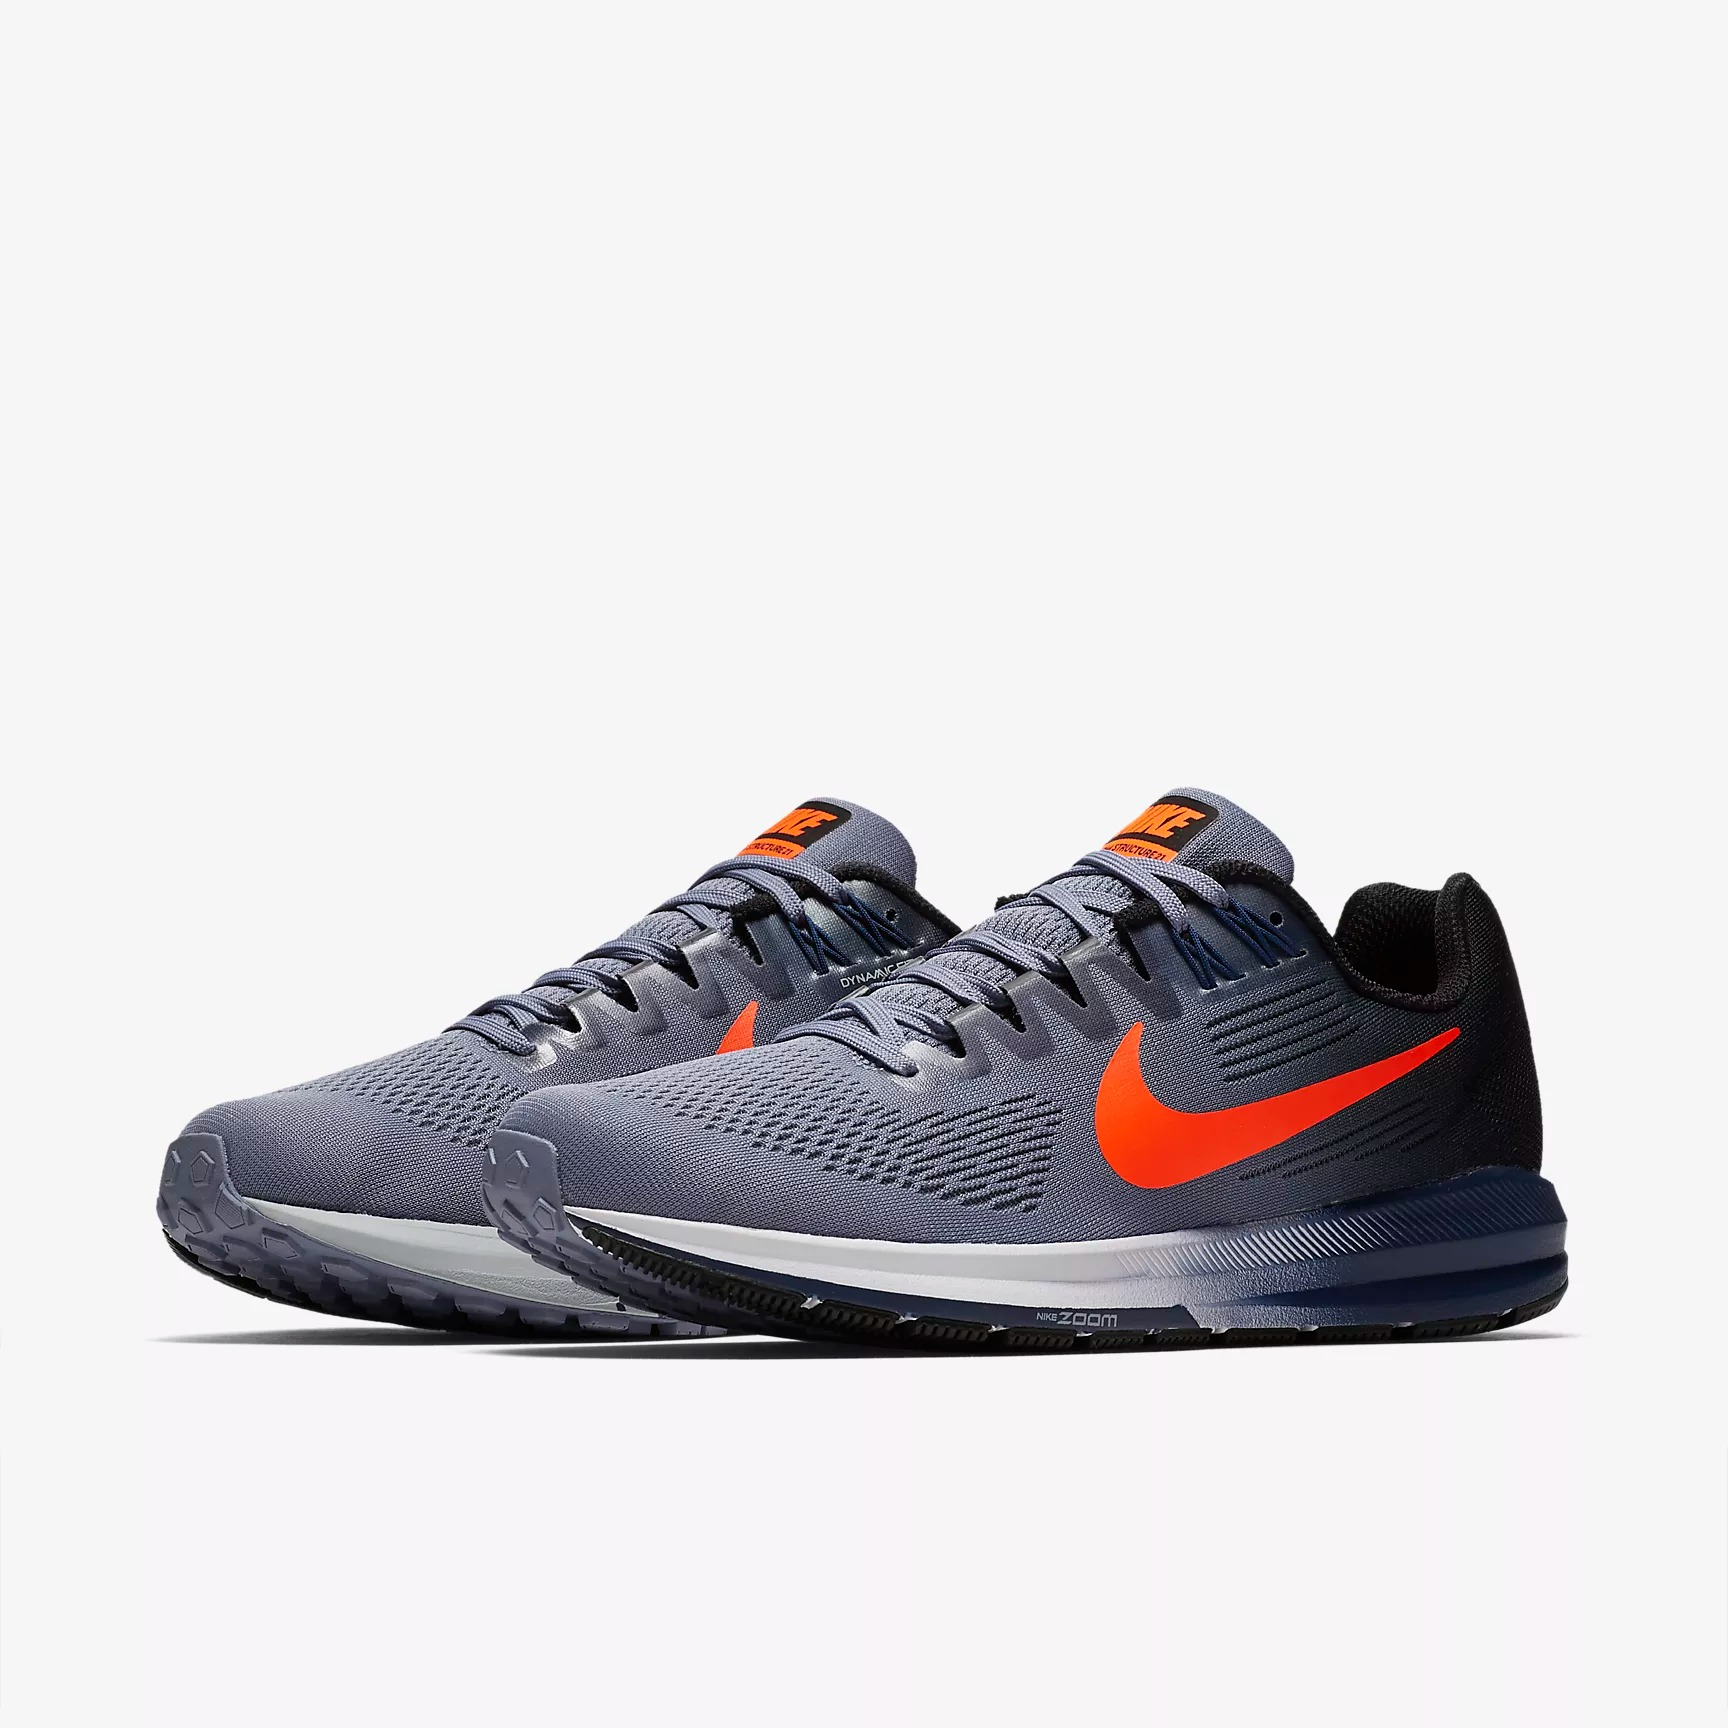 a6b7f22c5385 Nike Air Zoom Structure 21 Men s Running Shoes - SPORT SHOES RUNNING SHOES  - Superfanas.lt